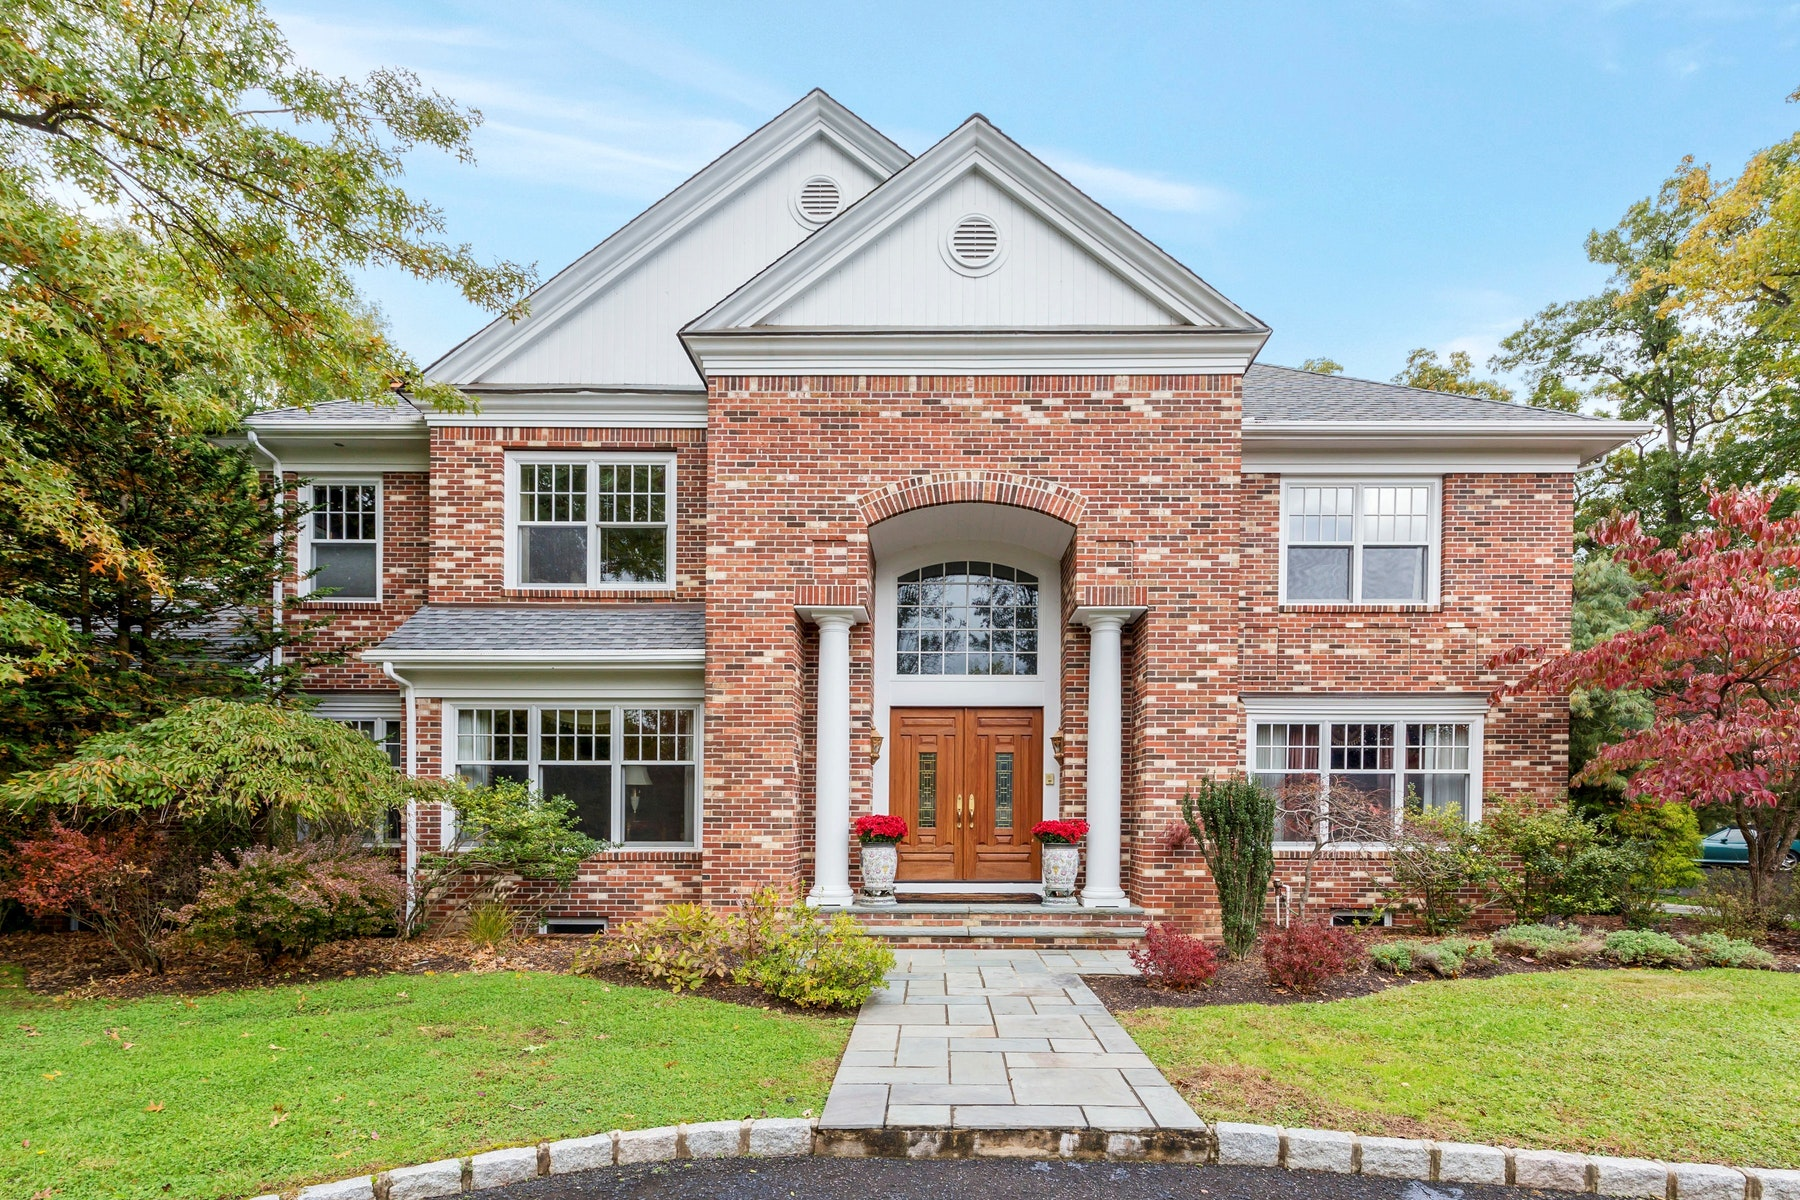 Single Family Homes for Sale at Magnificent Custom Colonial 910 Bailey Court Westfield, New Jersey 07090 United States